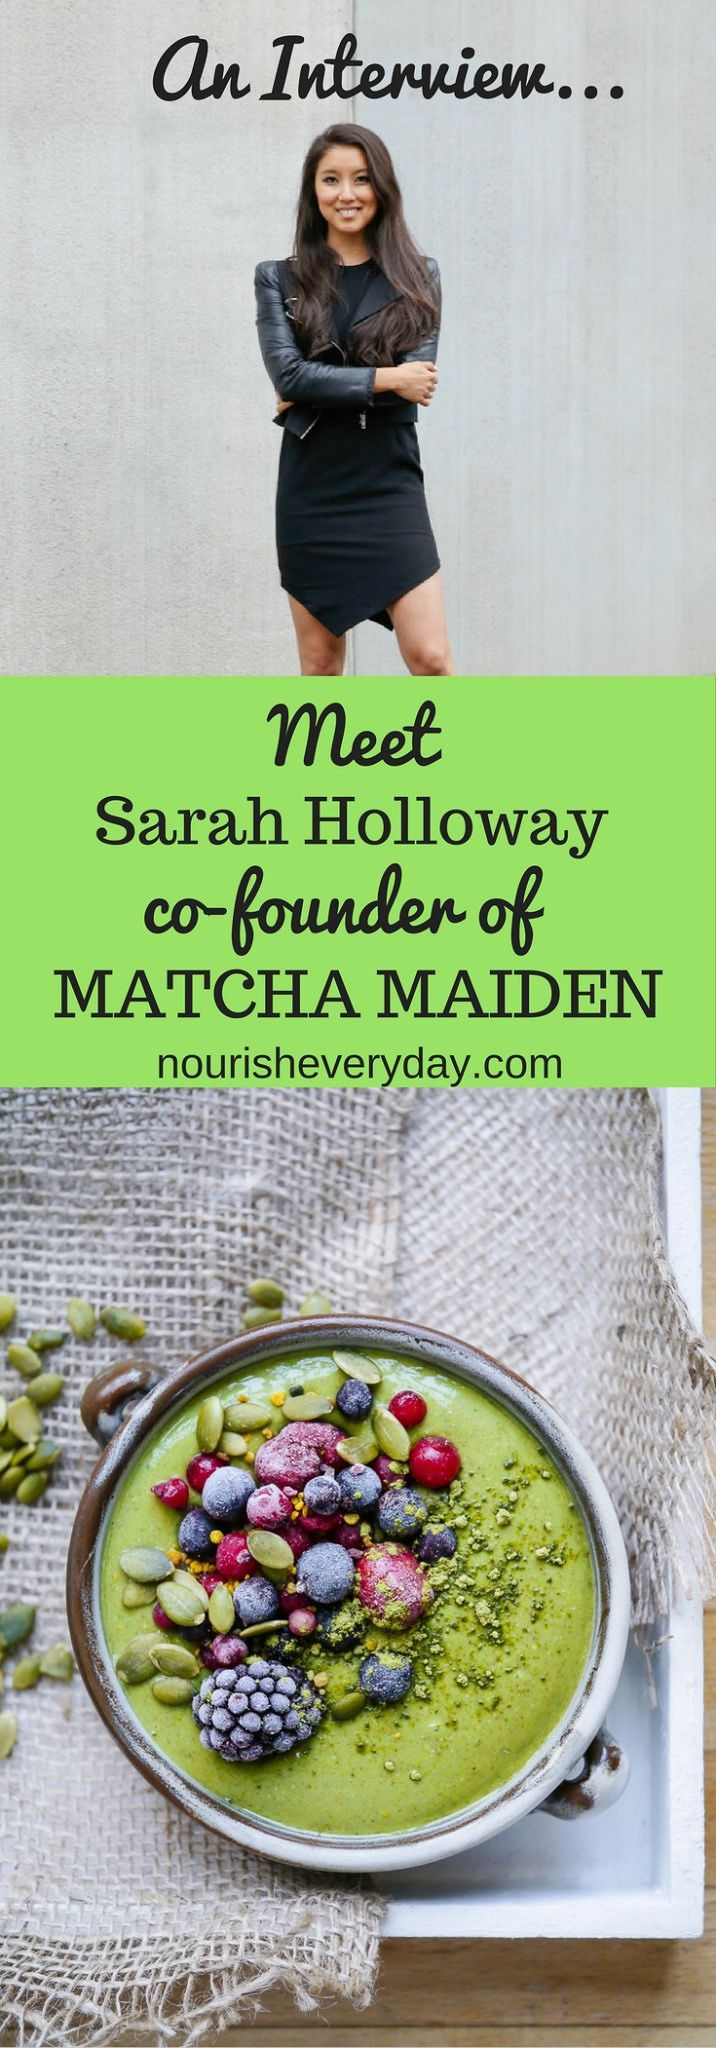 An interview with one of the founders of Matcha Maiden, Sarah Holloway. Genius girl boss, entrepreneur and healthy foodie! Via nourisheveryday.com